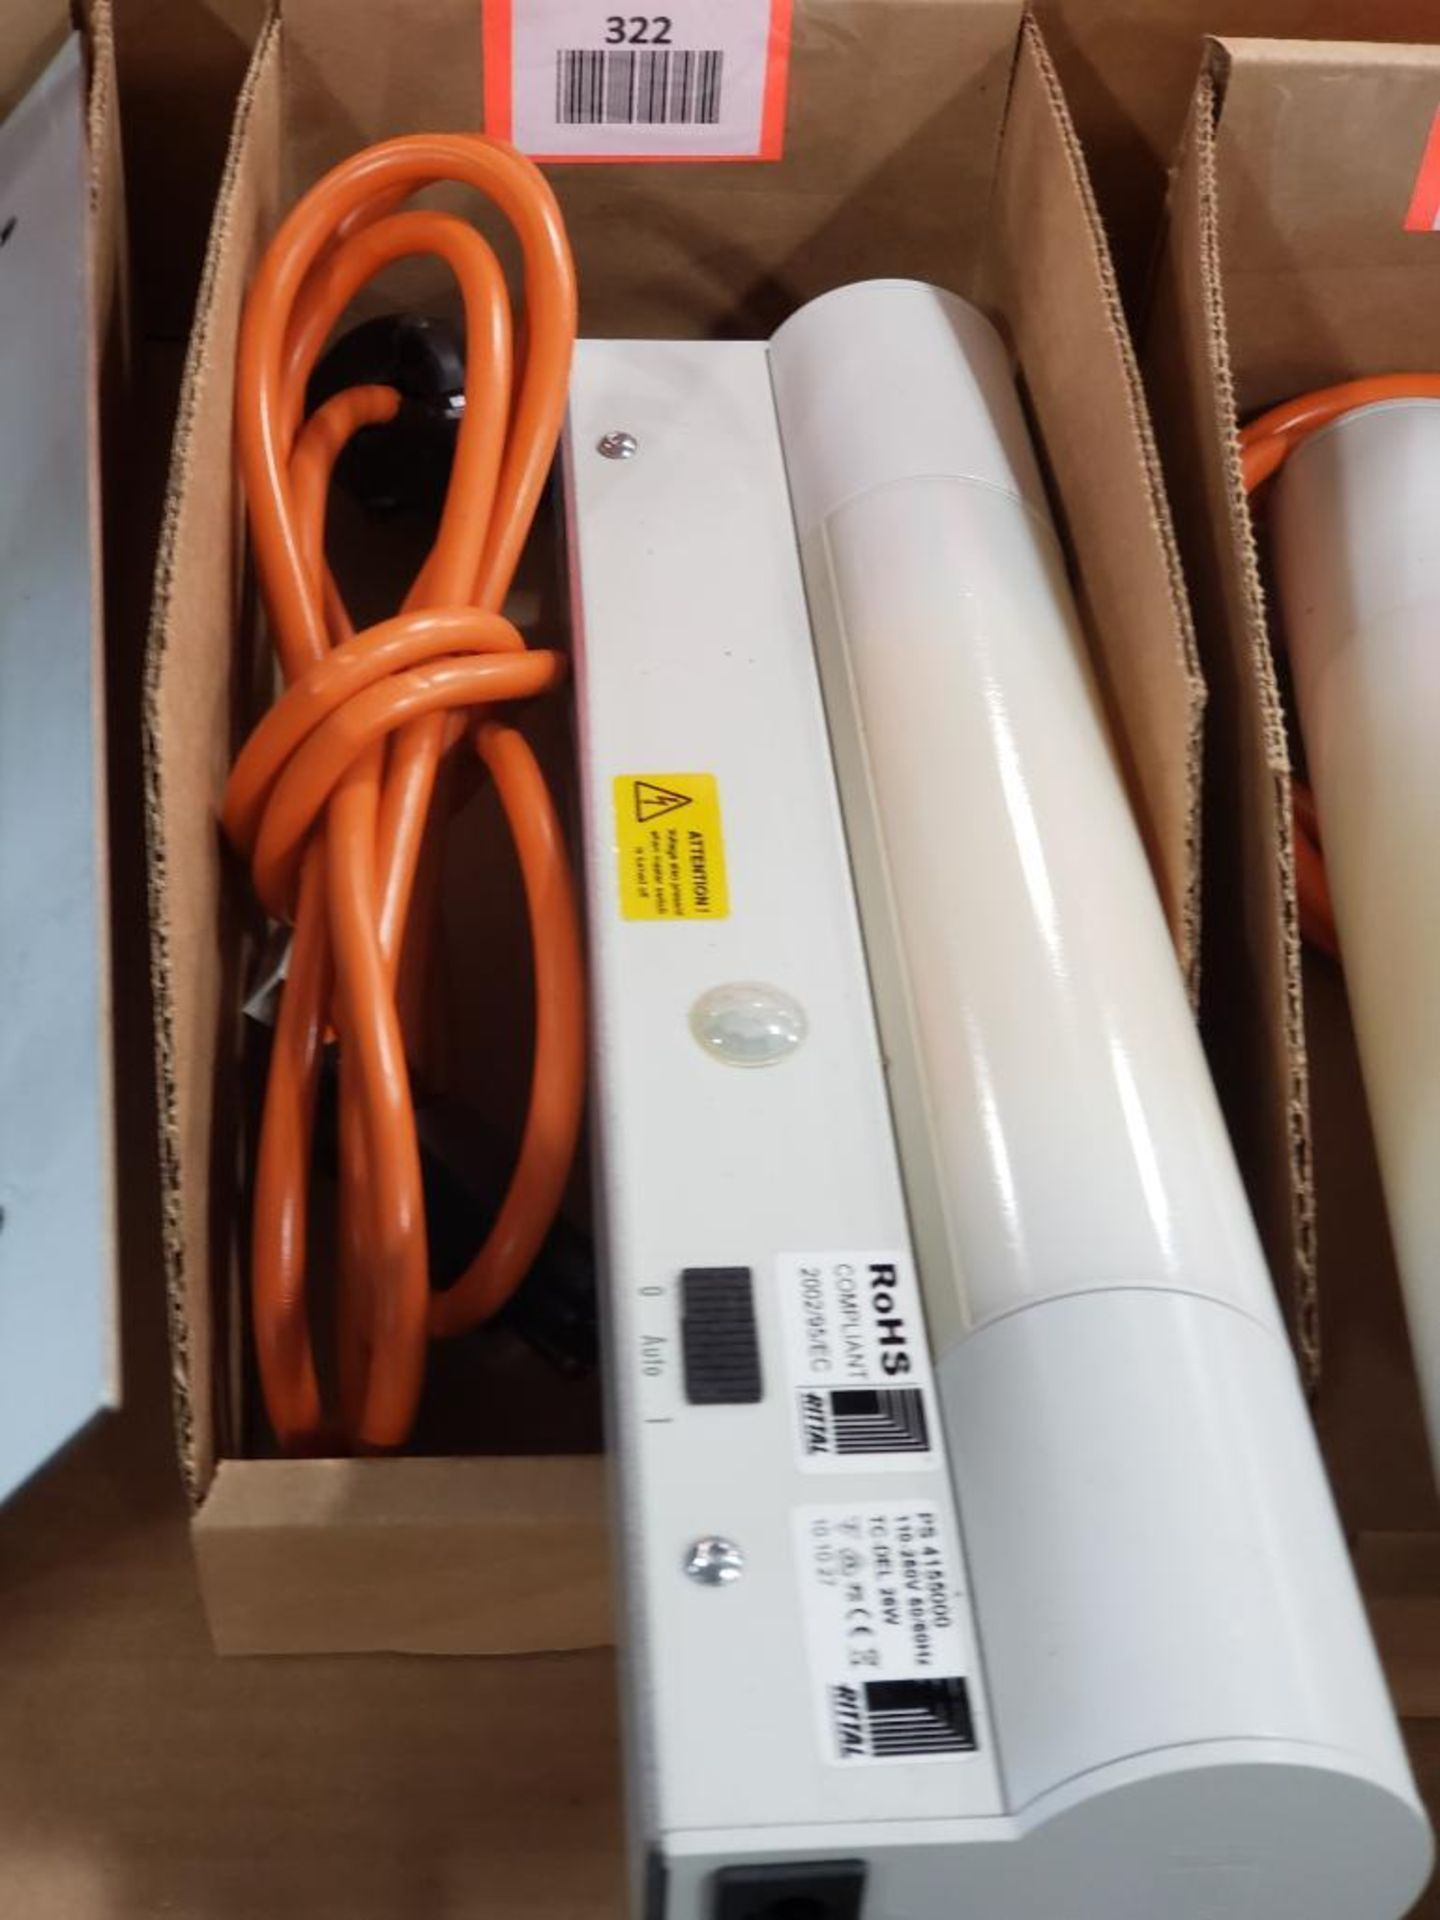 Rittal PS-4155000 Universal cabinet light with motion detector. Cord included.